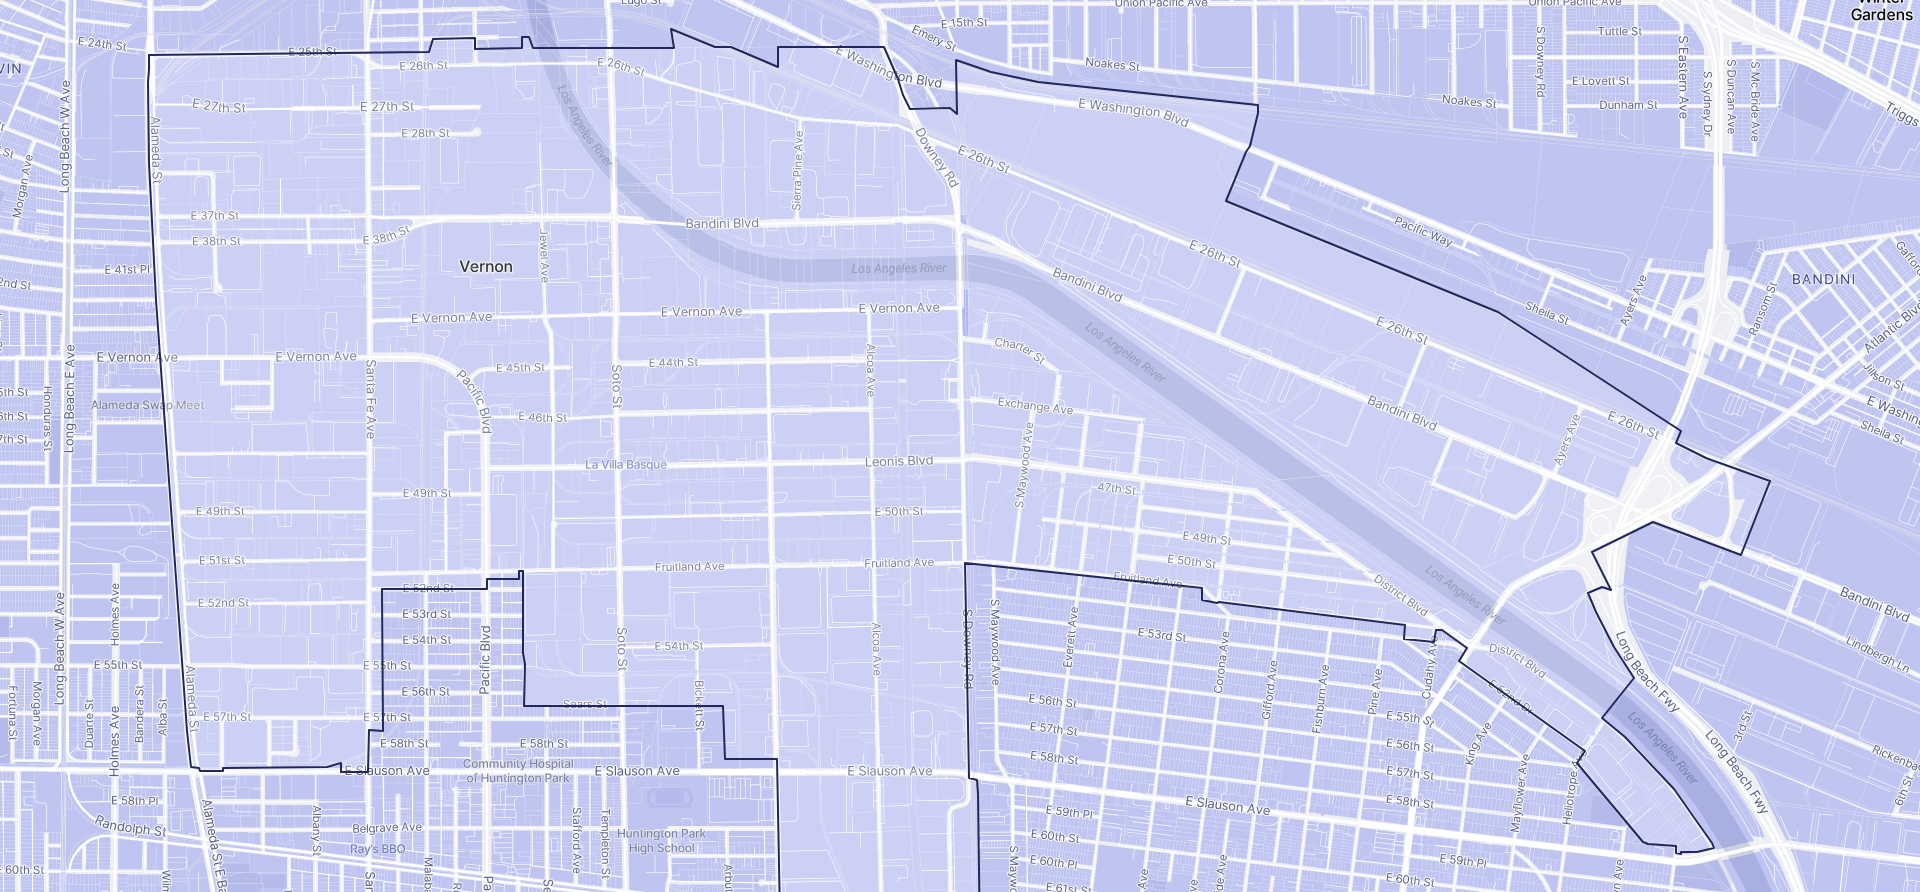 Image of Vernon boundaries on a map.